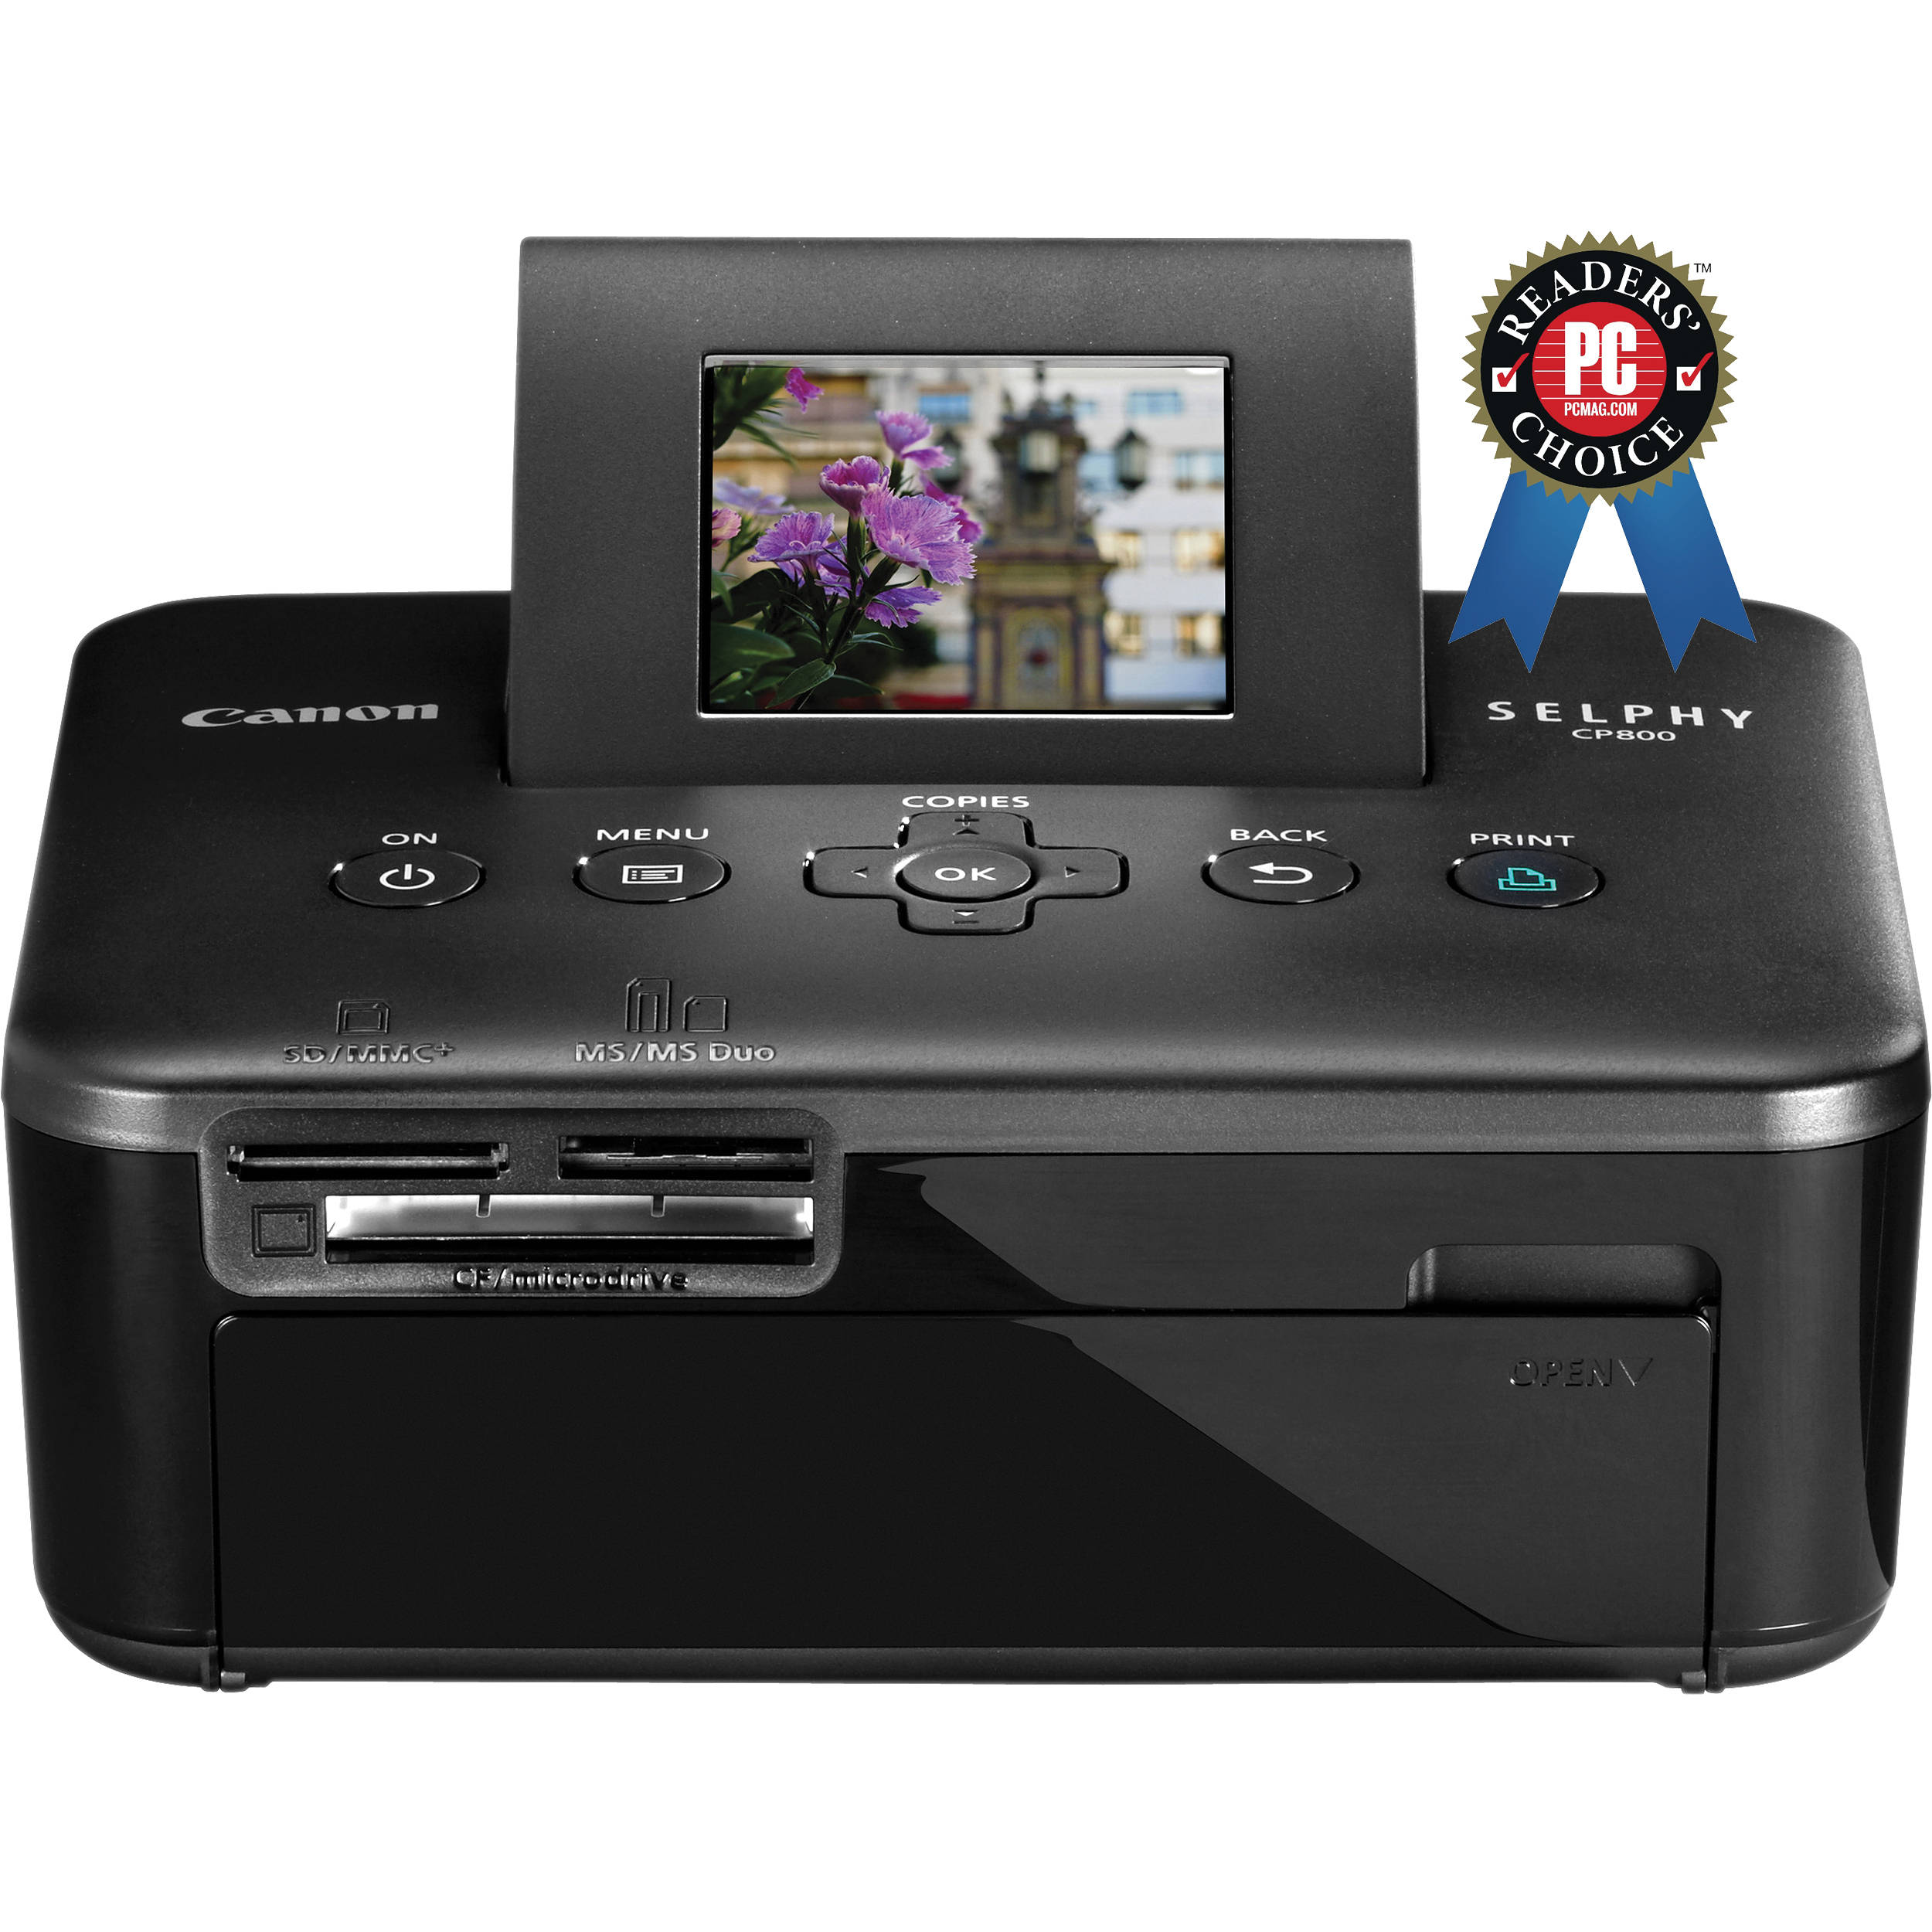 canon selphy cp800 manual download